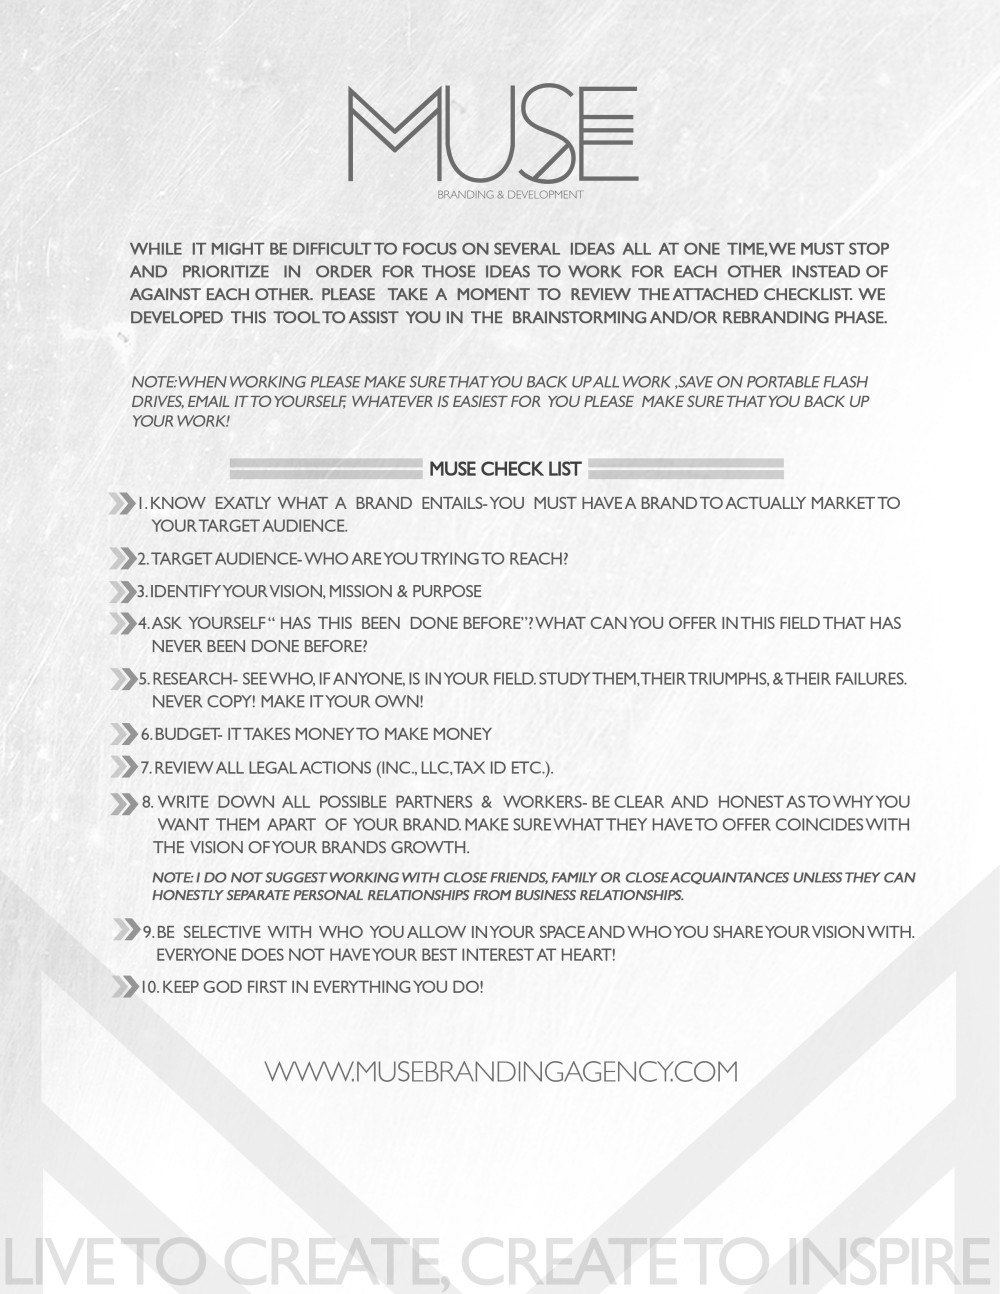 Muse Branding - Project Checklist